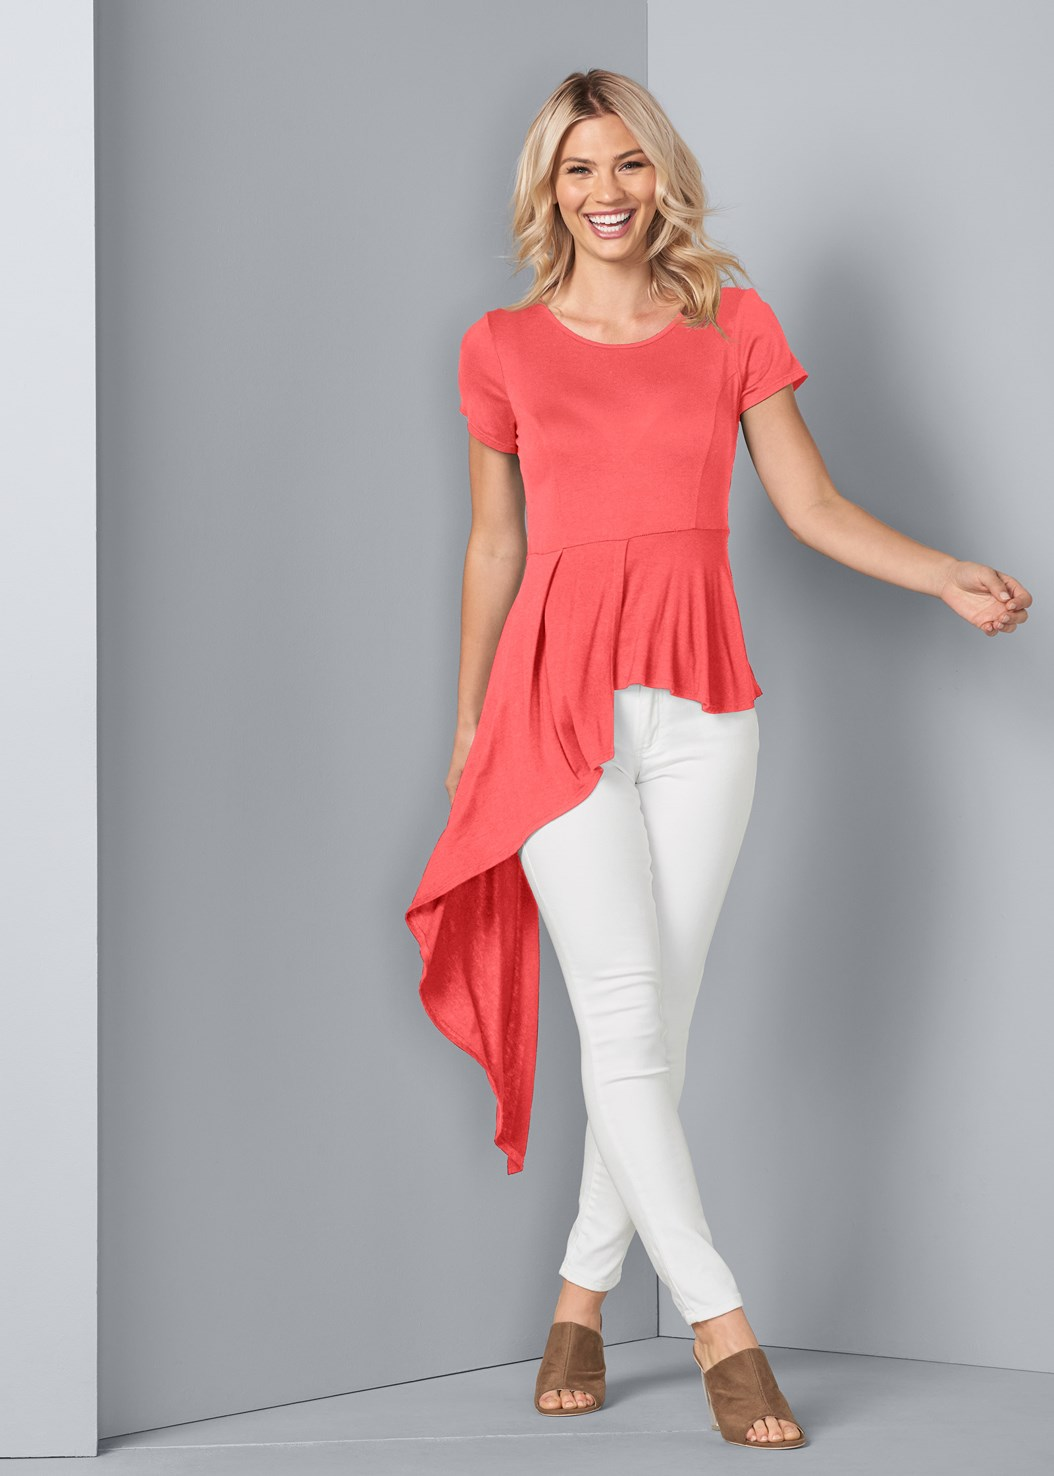 Asymmetrical Top,Color Skinny Jeans,Lucite Heel Mules